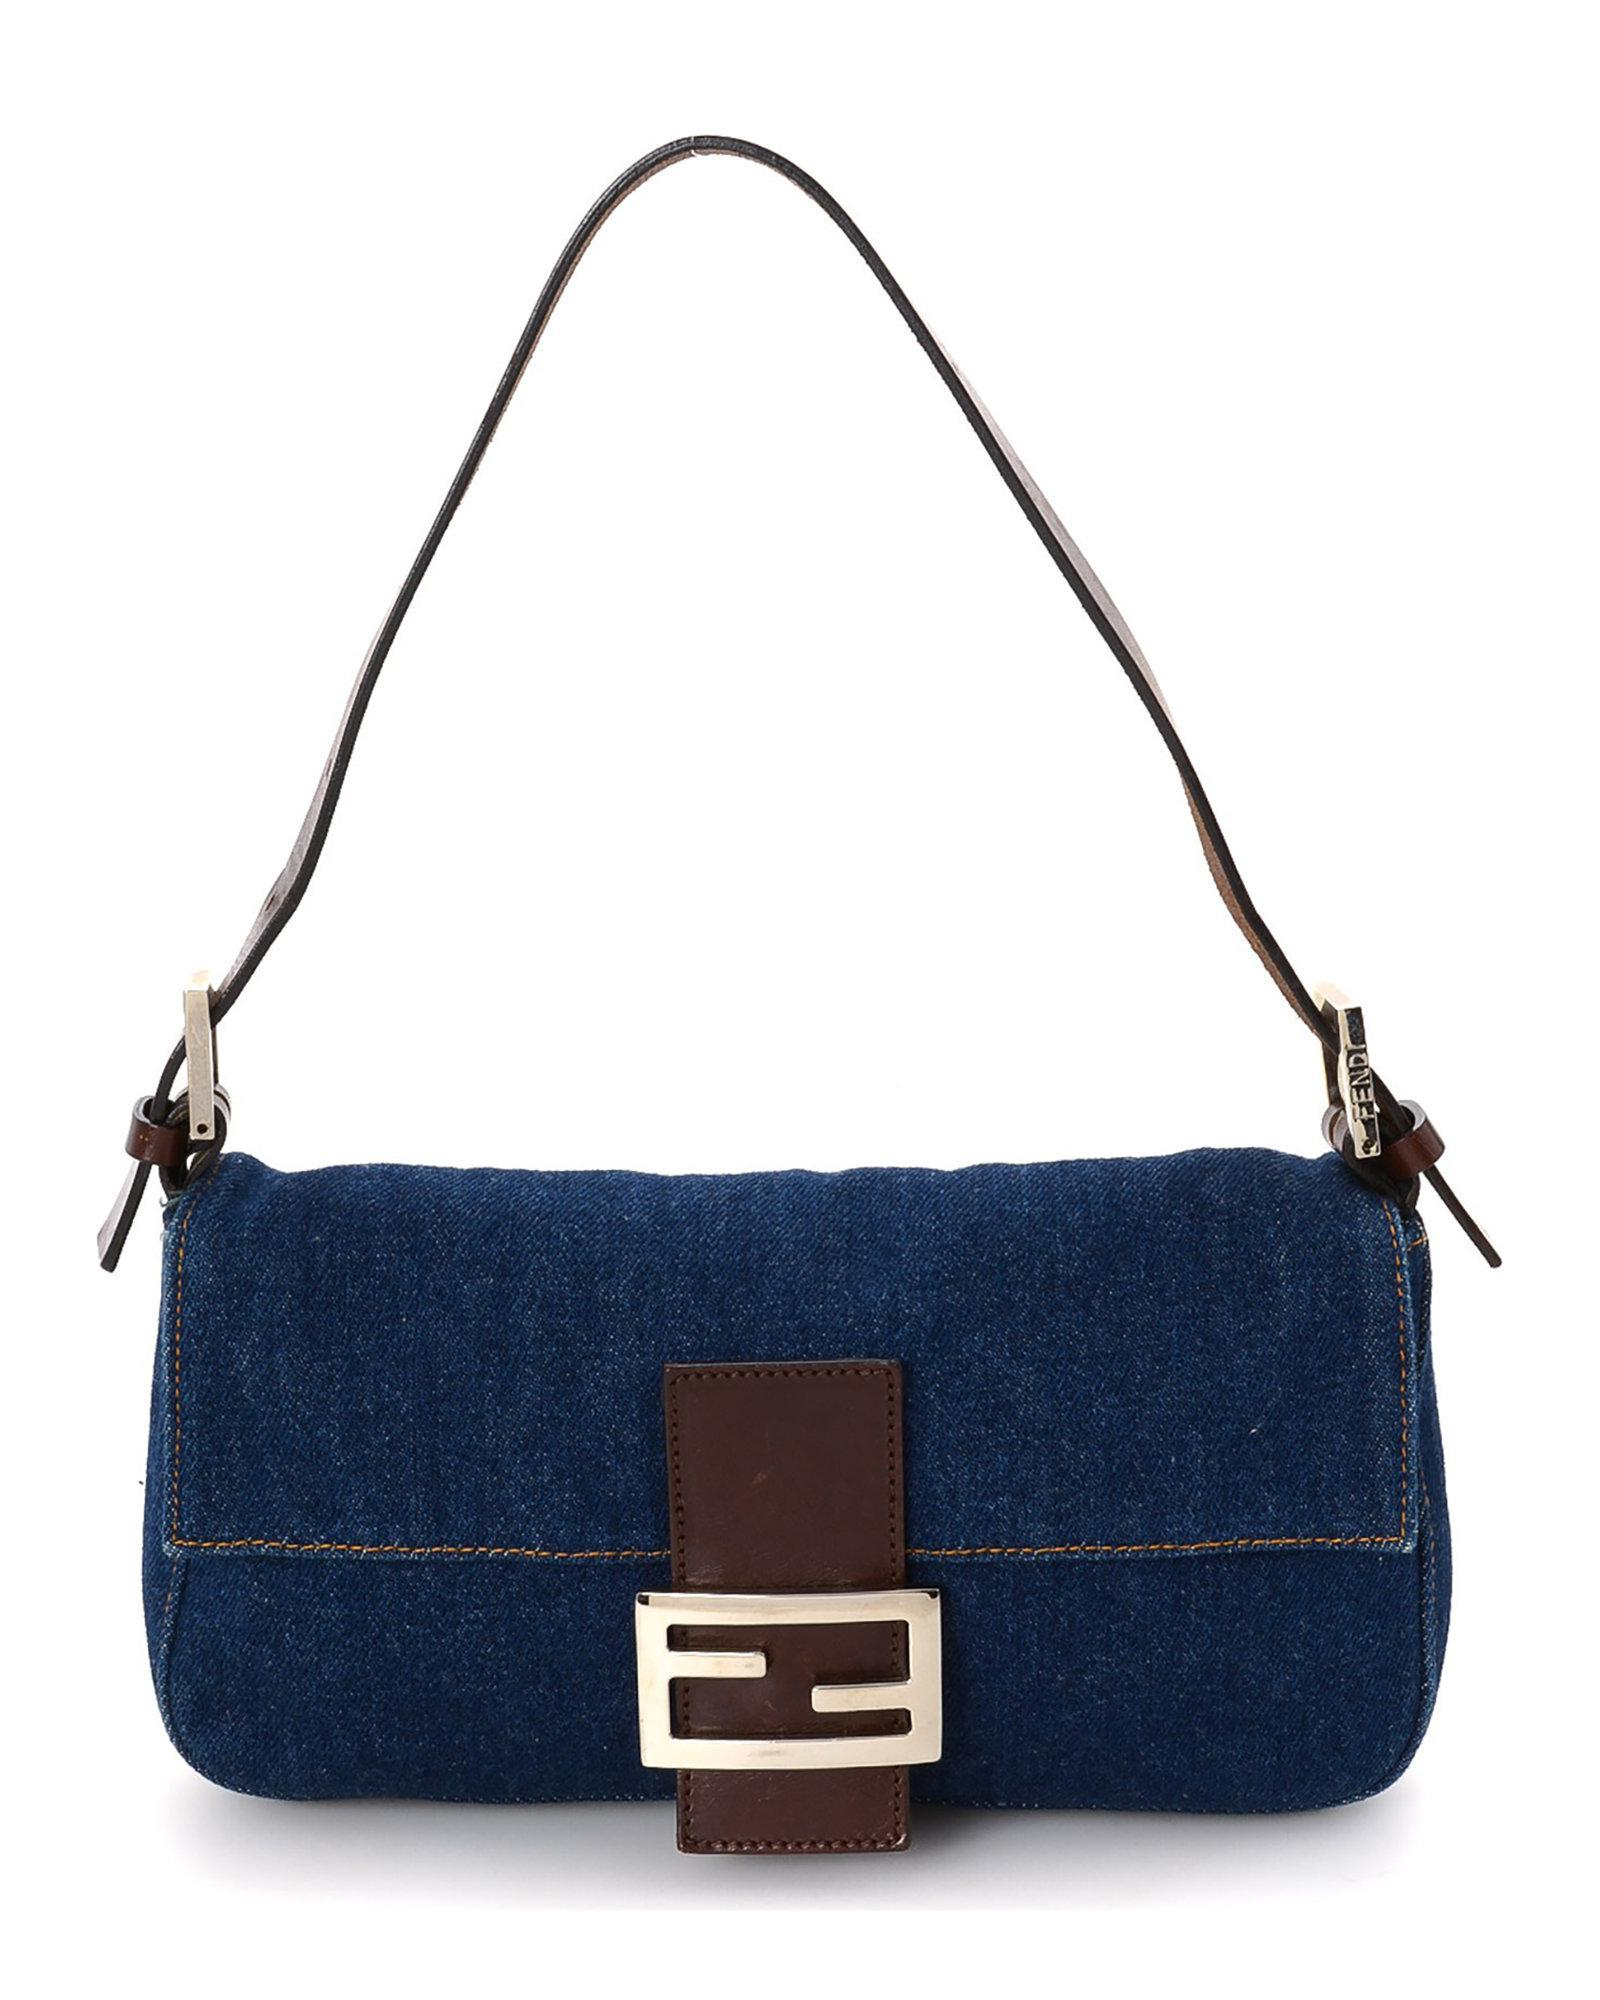 825e54bebf Gallery. Previously sold at  Century 21 · Women s Fendi Baguette Women s  Leather Messenger Bags ...